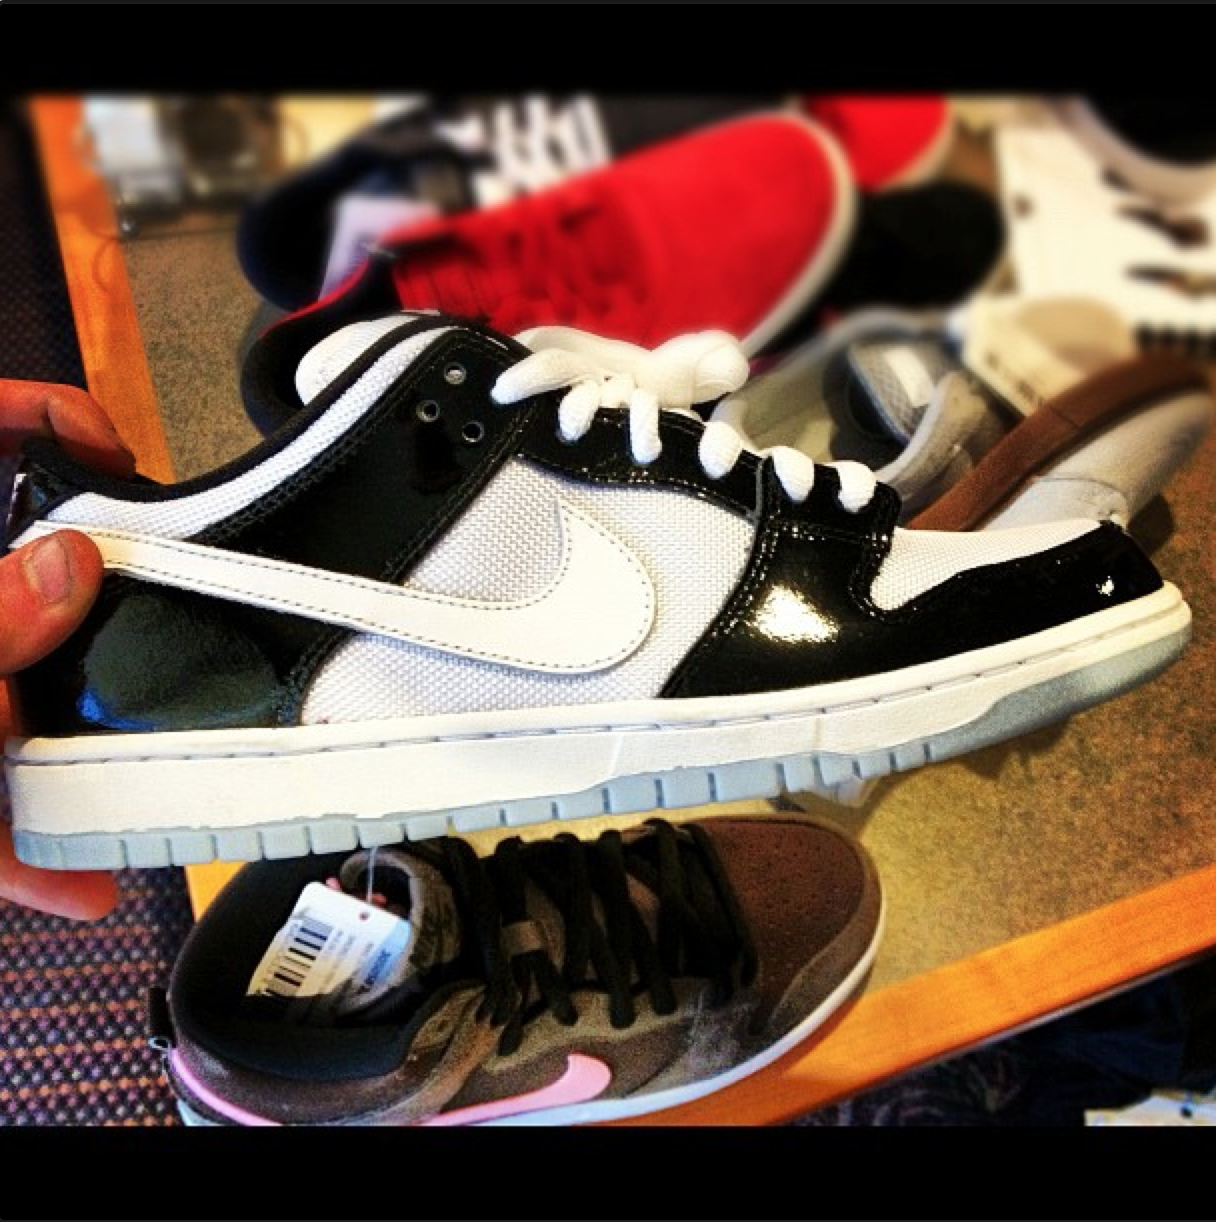 Brooklyn Projects x Nike SB Dunk Low 'Concord' - New Images